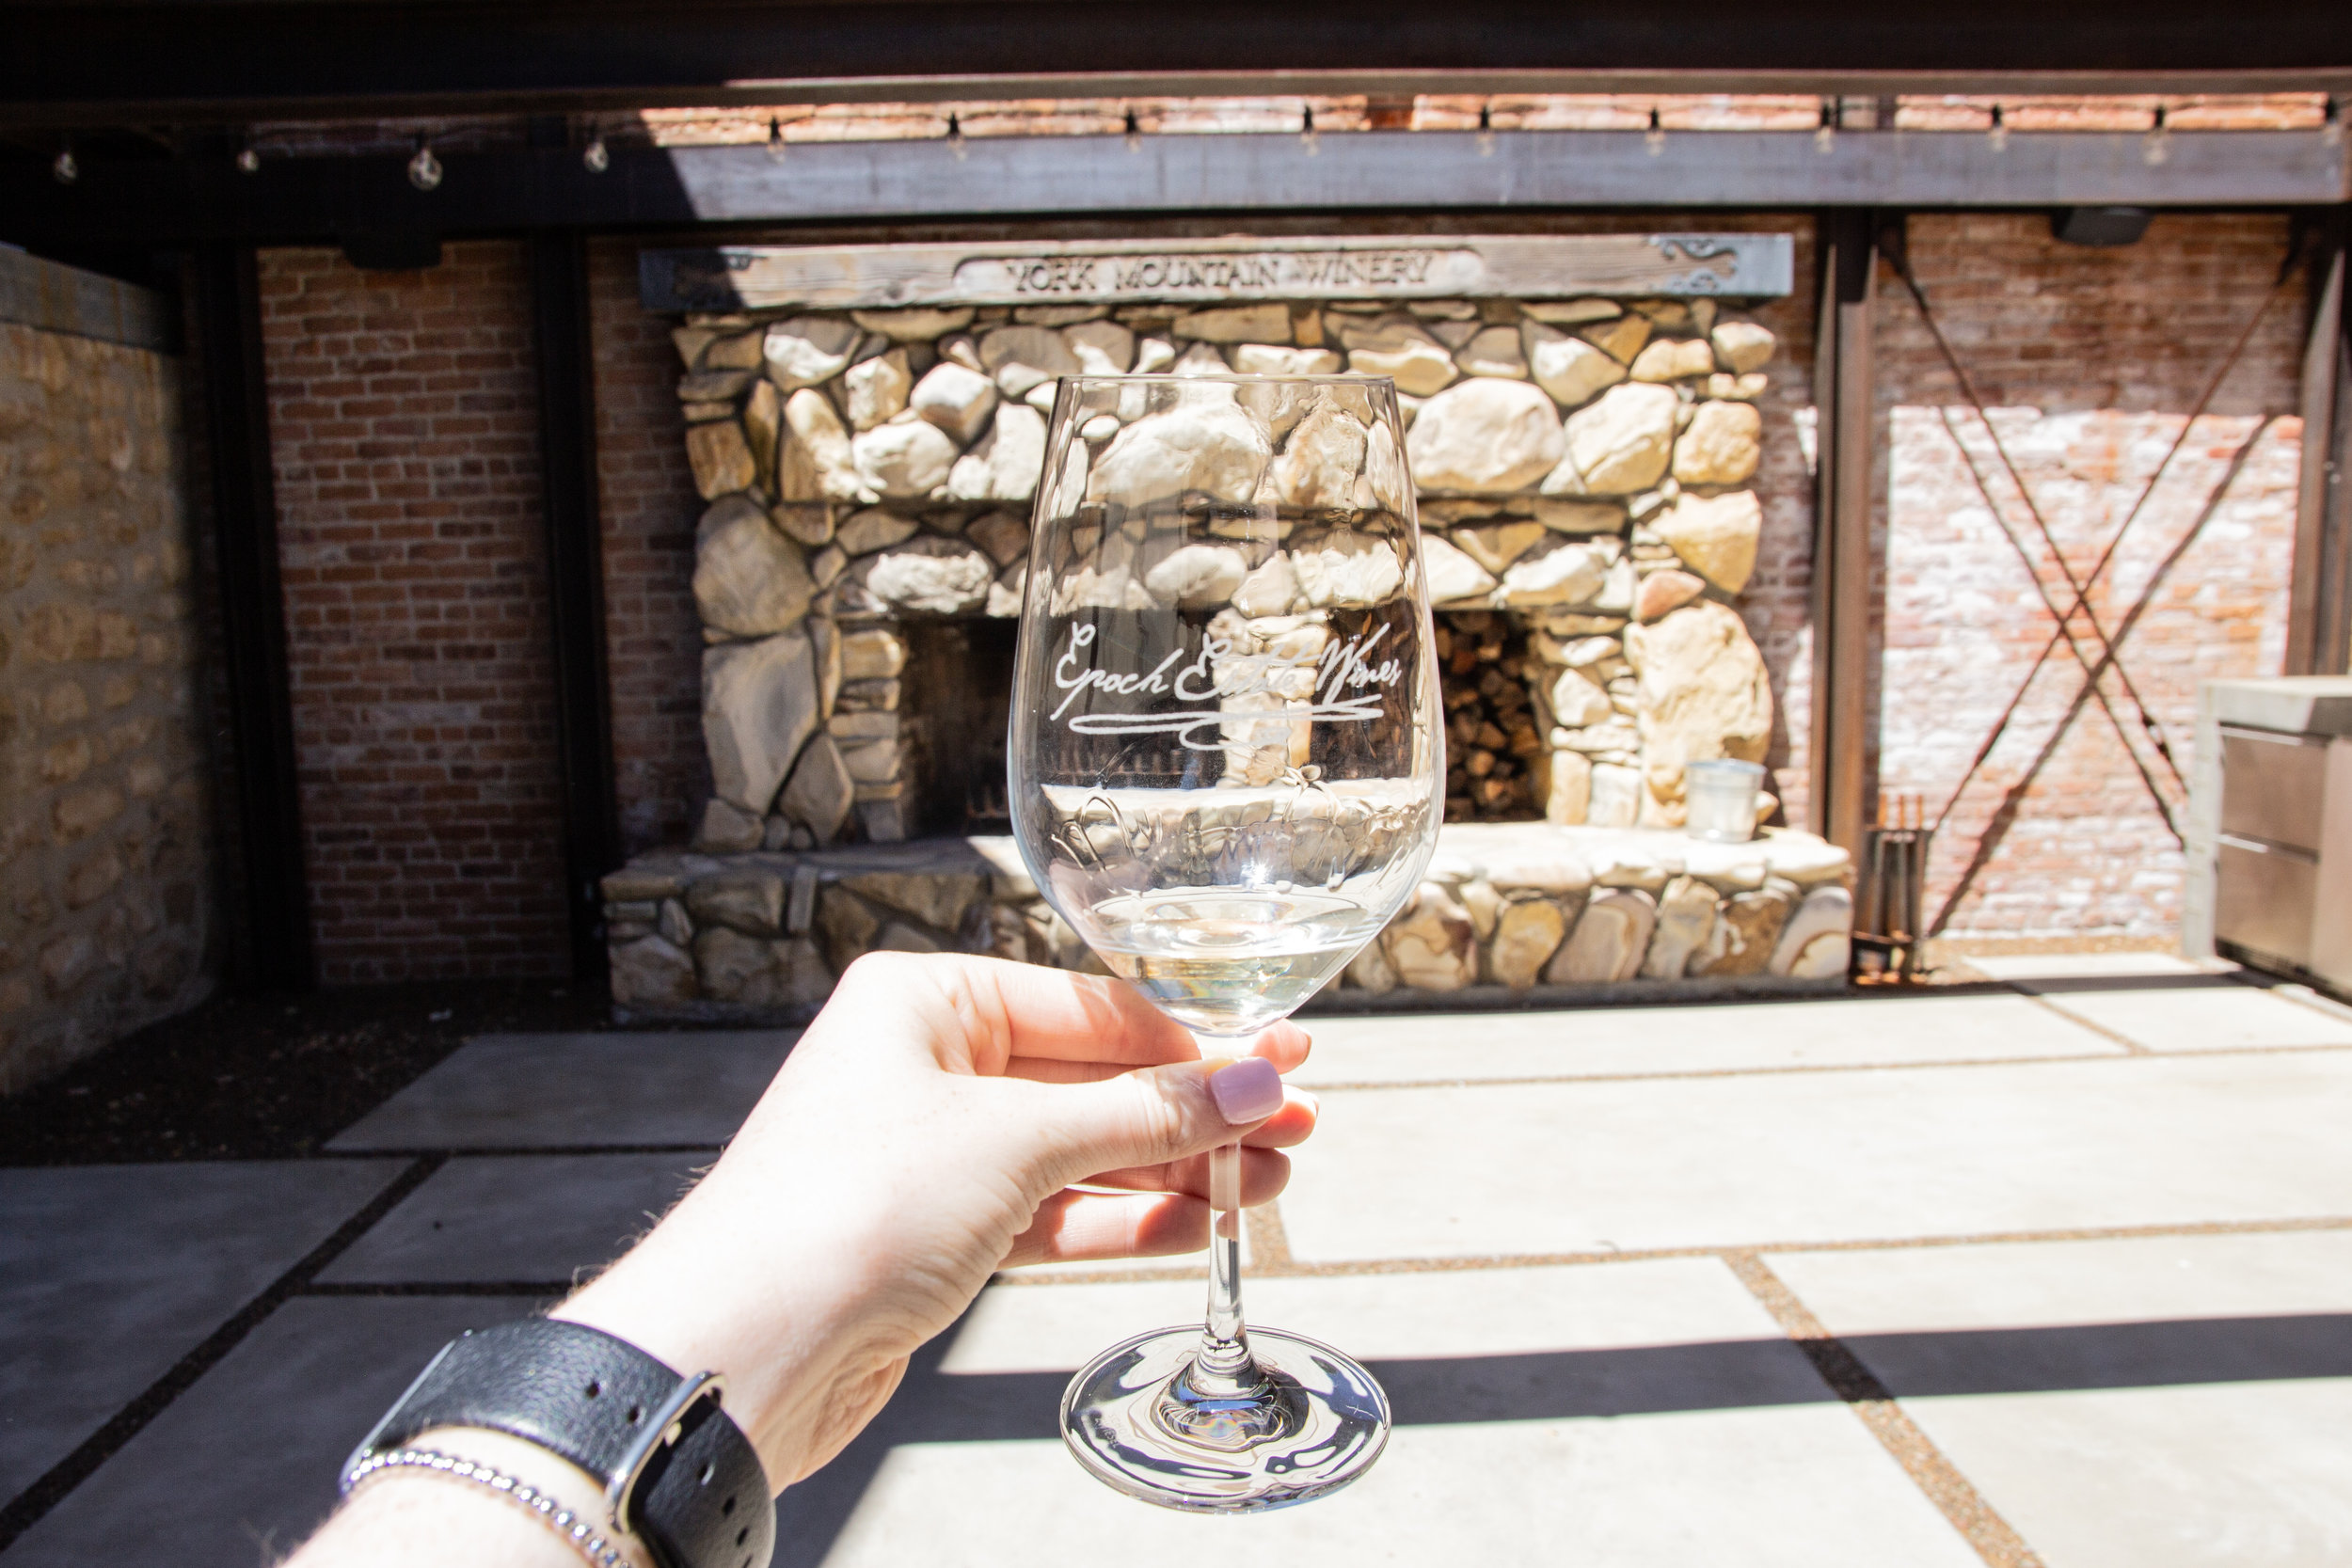 epoch estate wines, paso robles, california, what wineries to go to in paso robles, best wineries in central coast, york mountain winery, ascension winery, couples trip, ellespann, travel blogger, visit california, lments of style